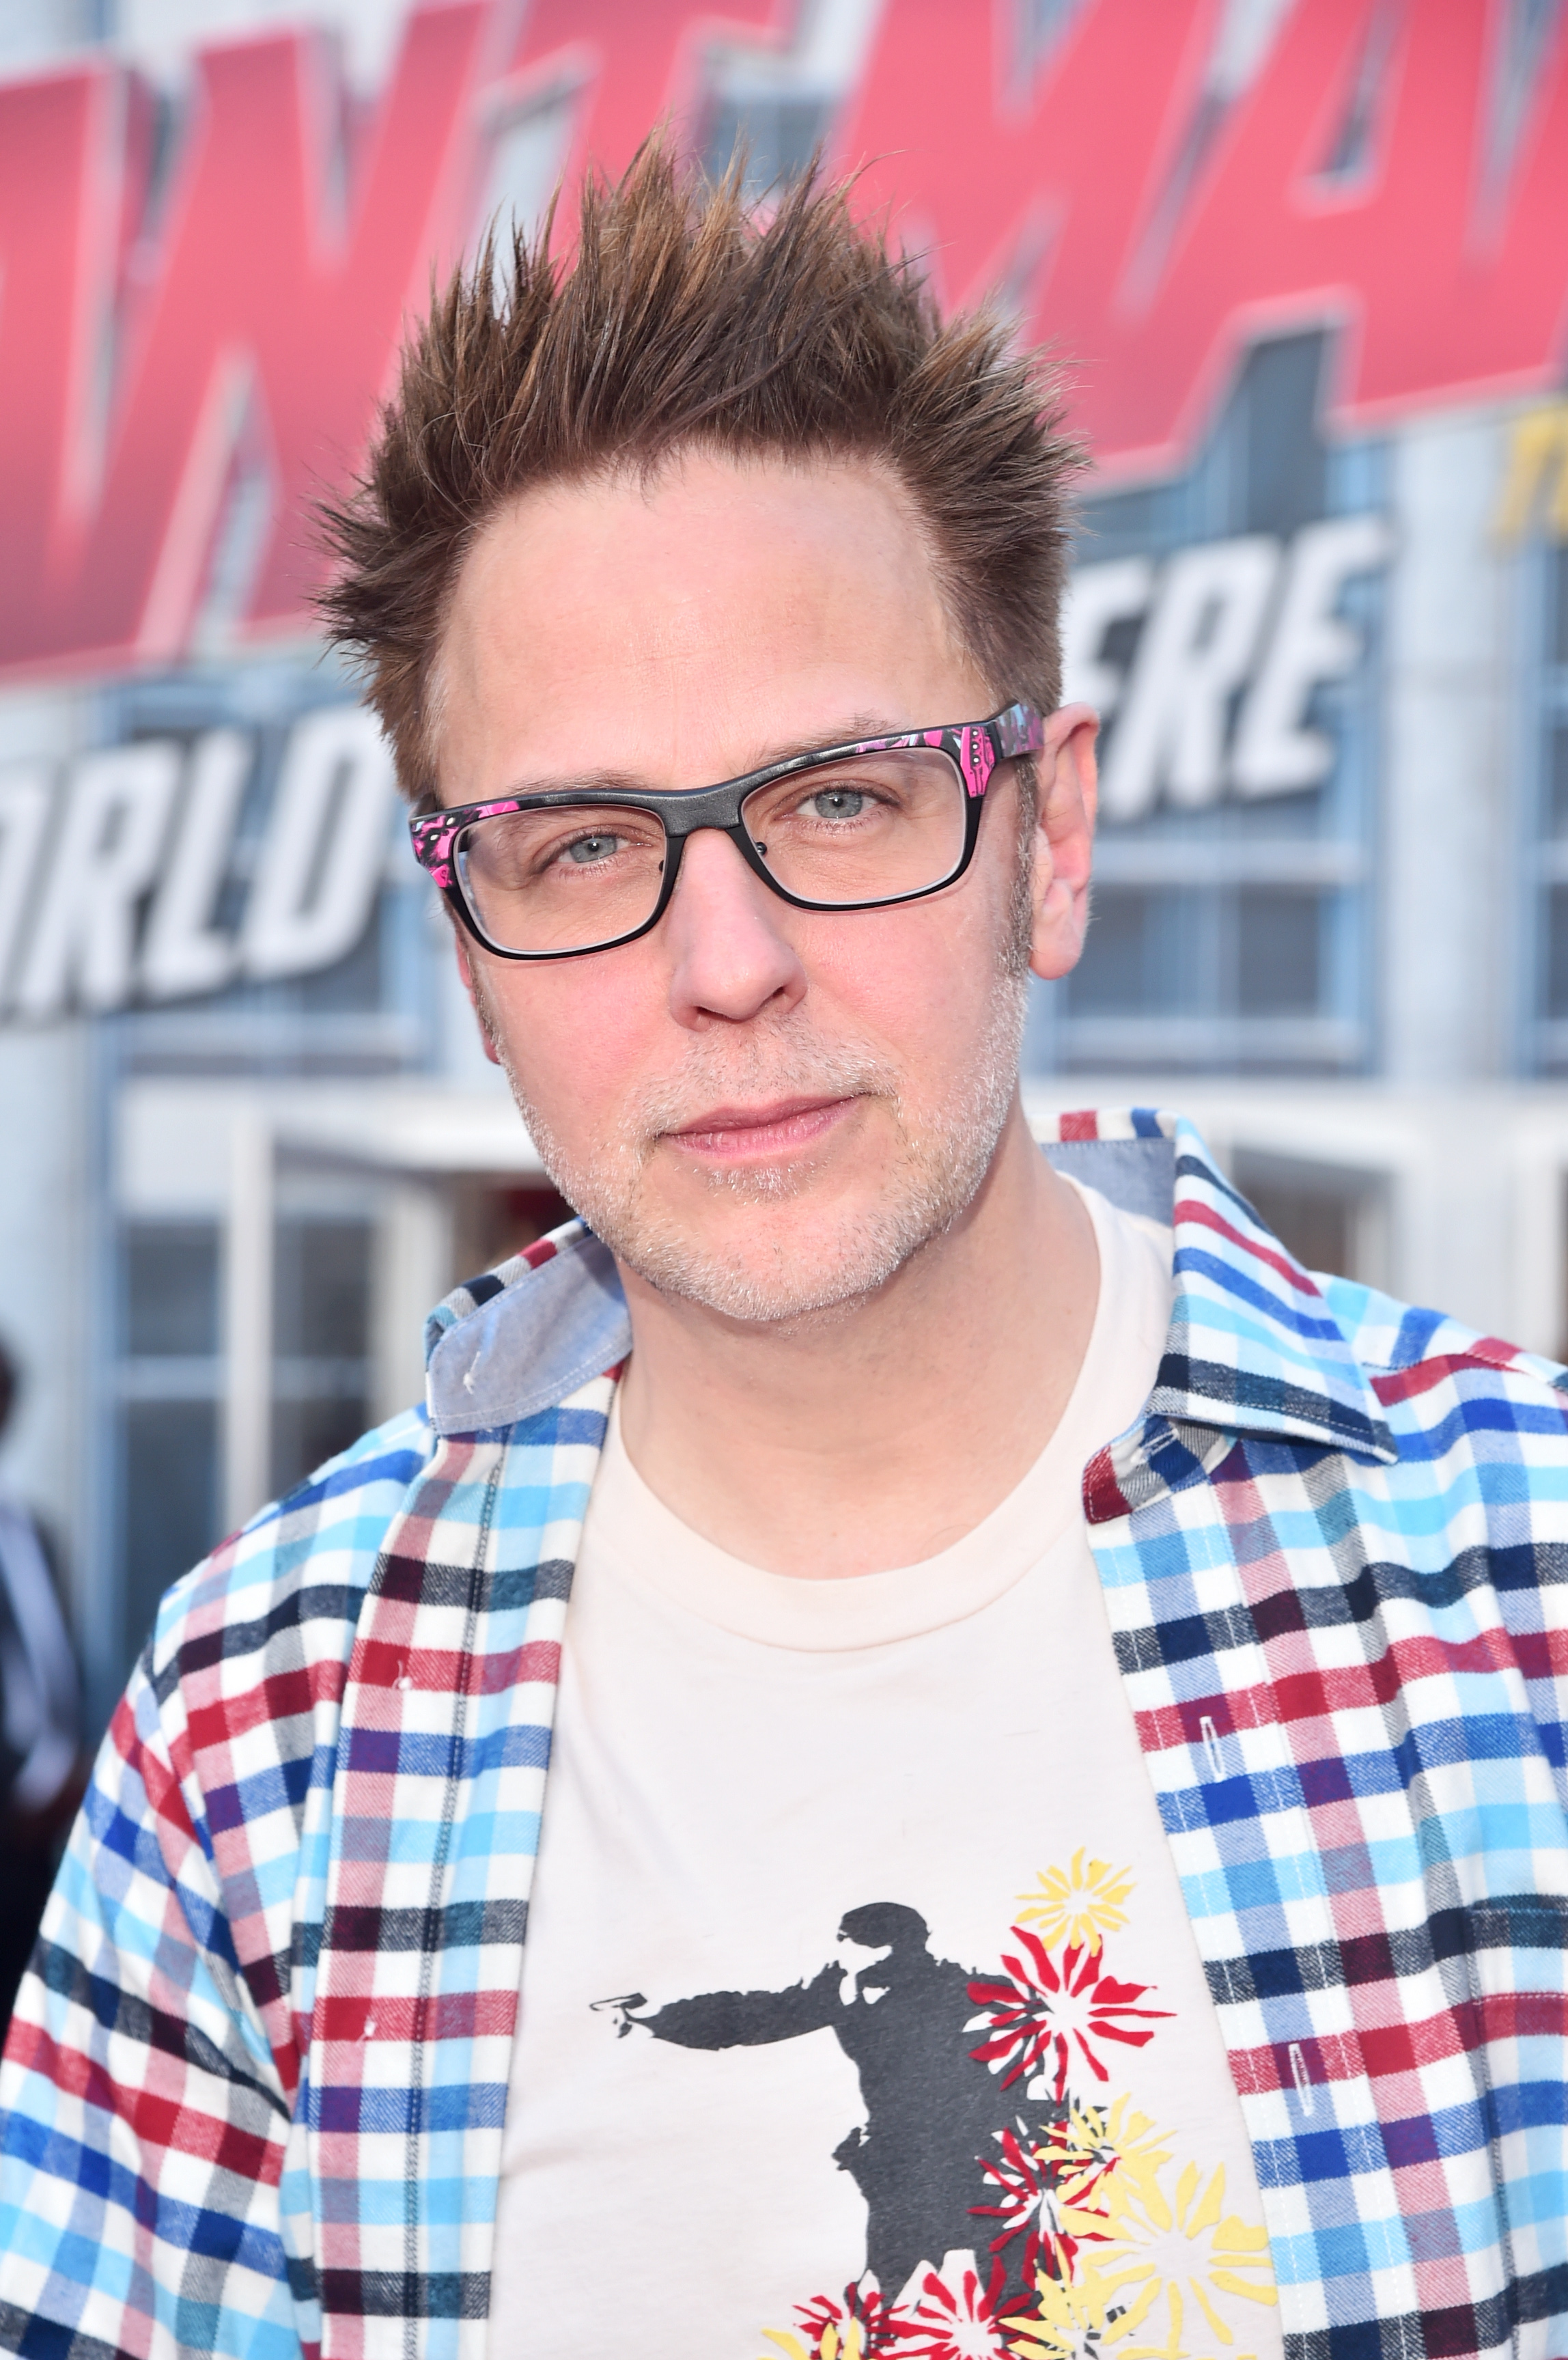 Disney rehires James Gunn to write and direct Marvel's Guardians of the Galaxy 3